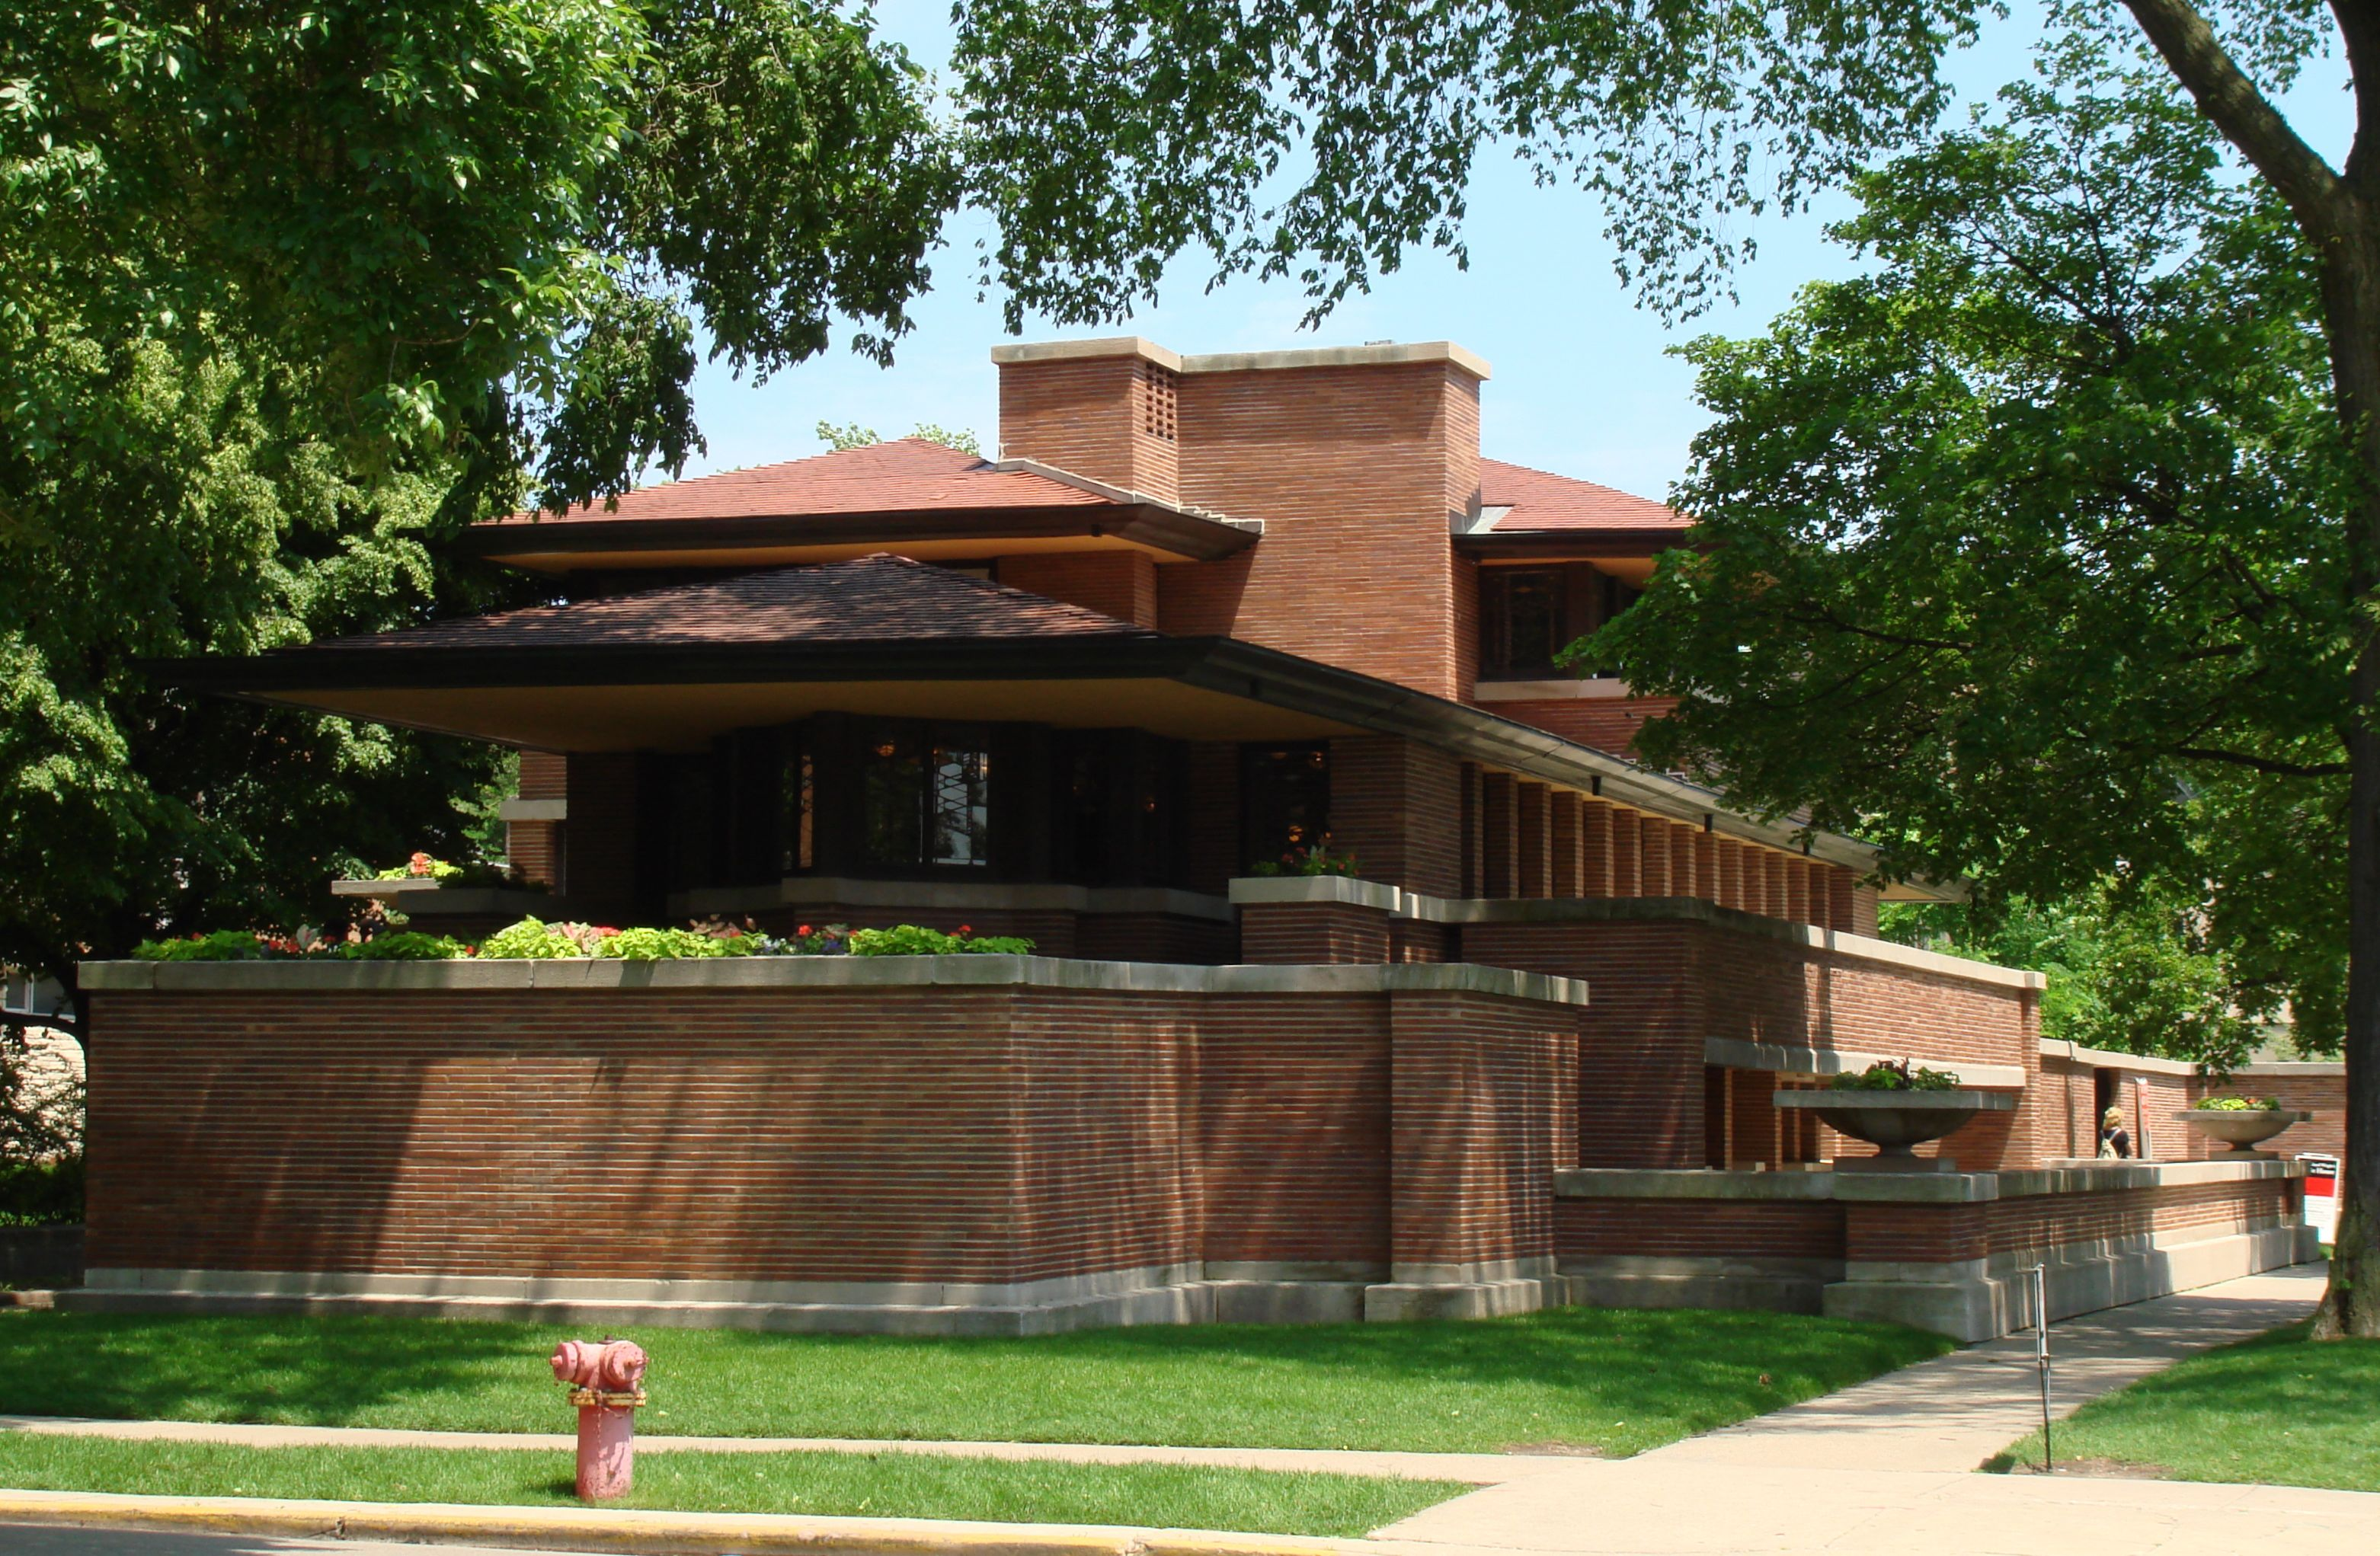 Chicago The Robie House And Frank Lloyd Wright The